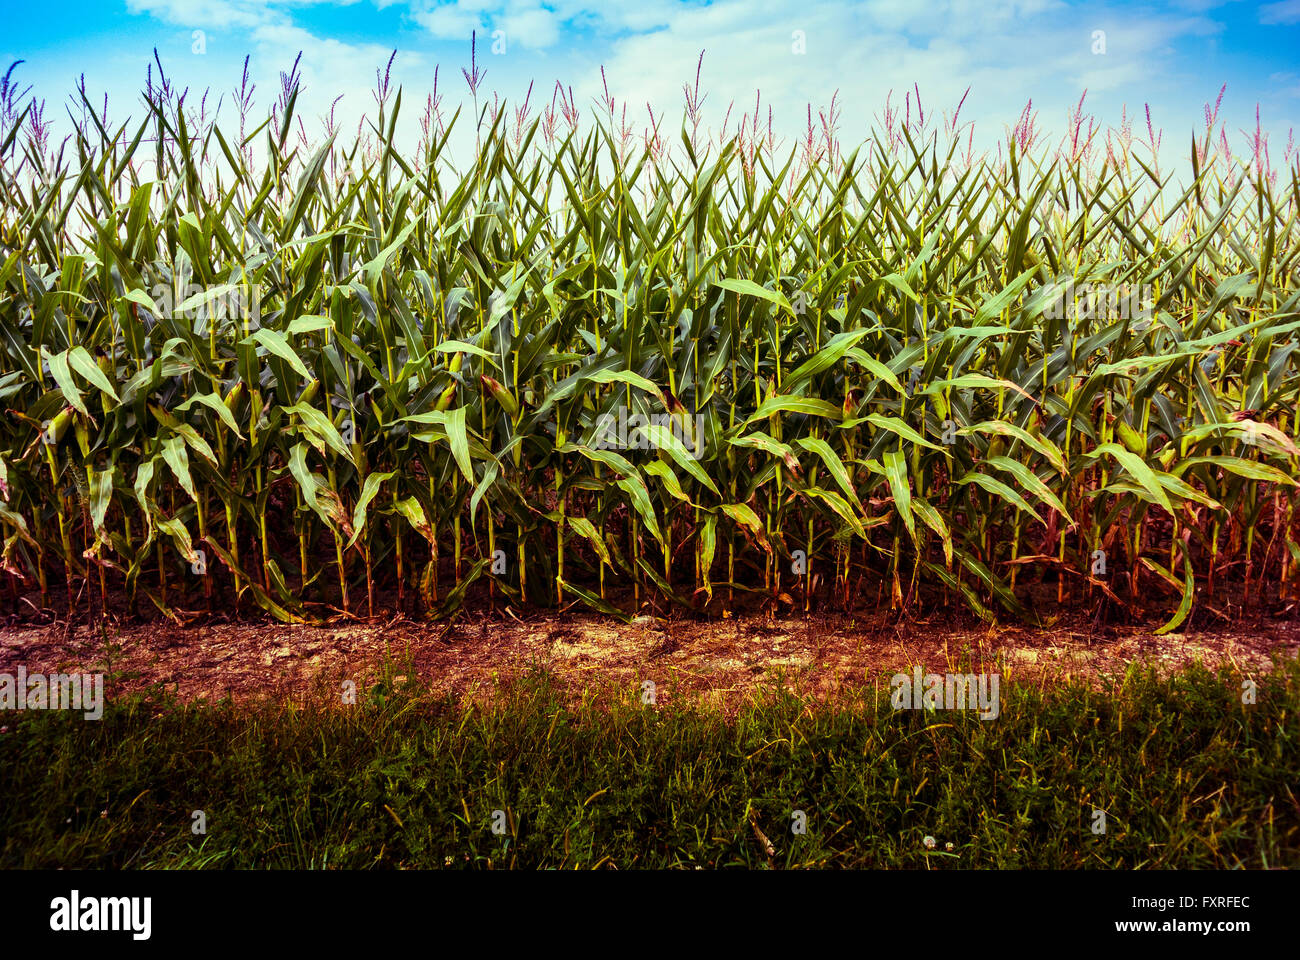 Minimalist view, row of corn in Indiana, USA. - Stock Image